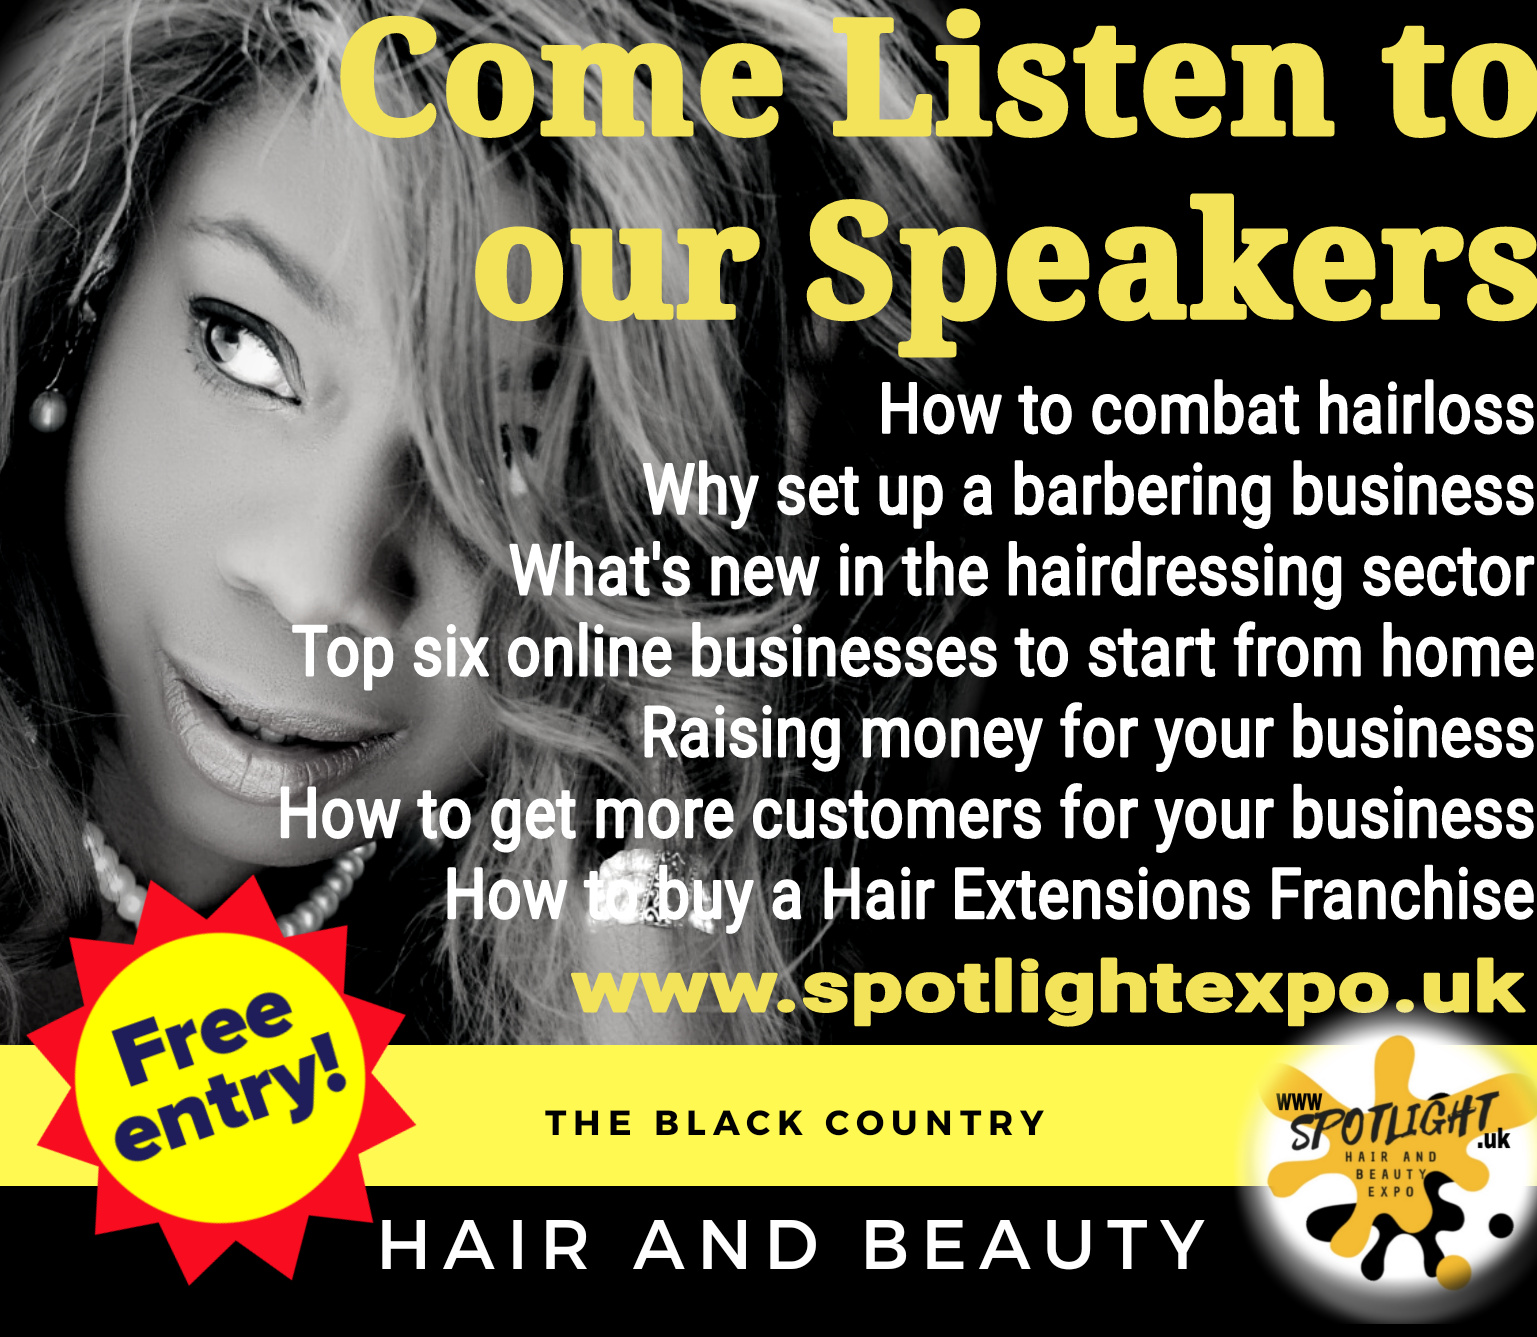 Come listen to our speakers at the spotlightexpo show